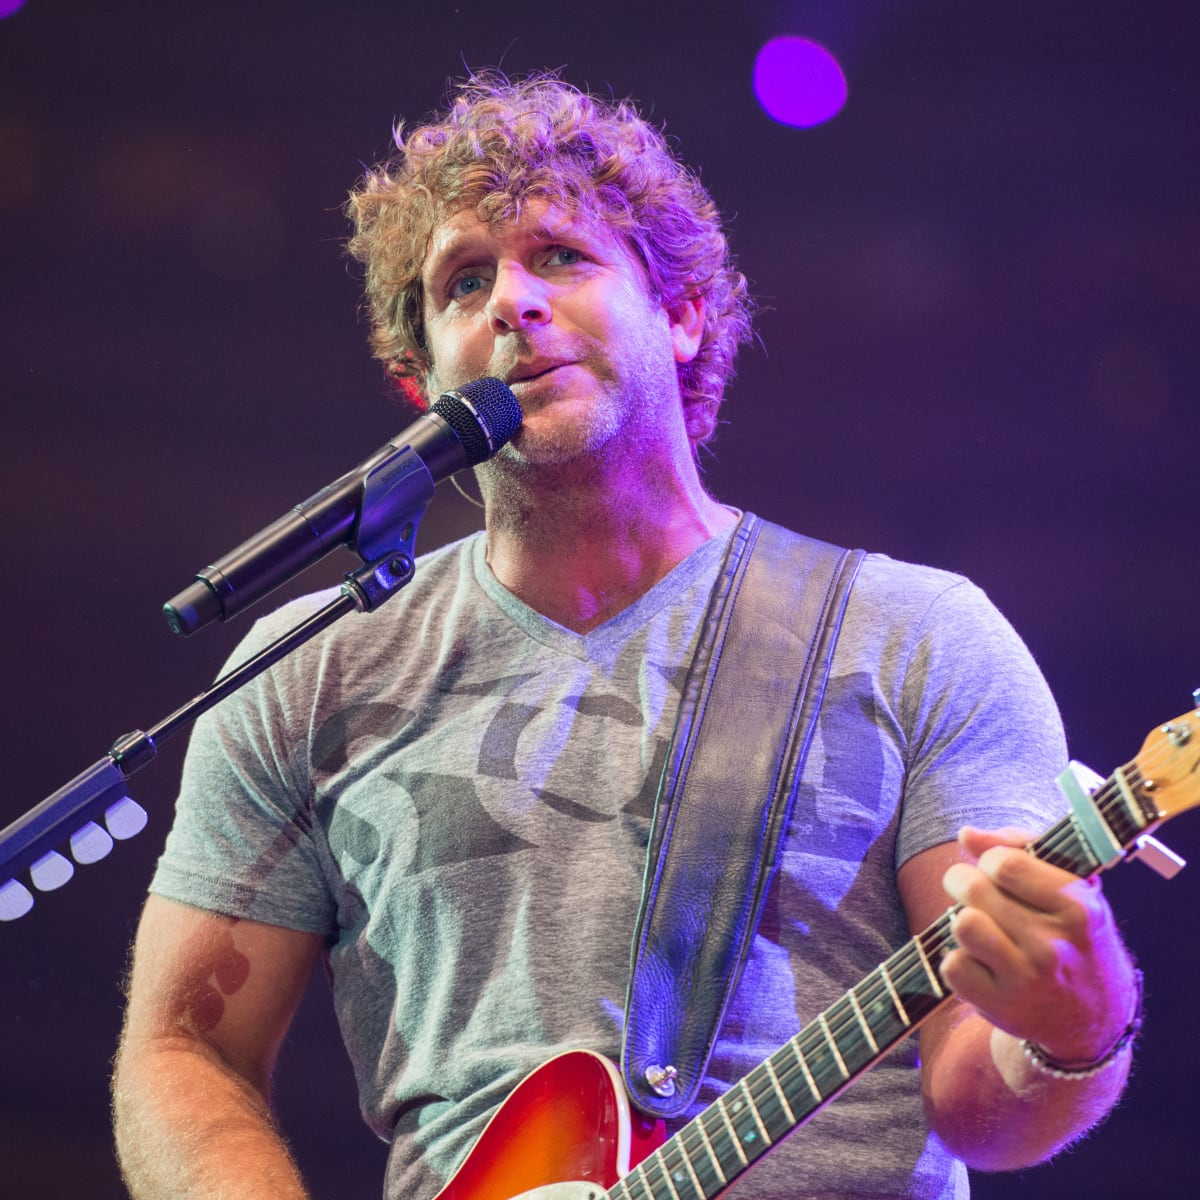 Billy Currington guitar